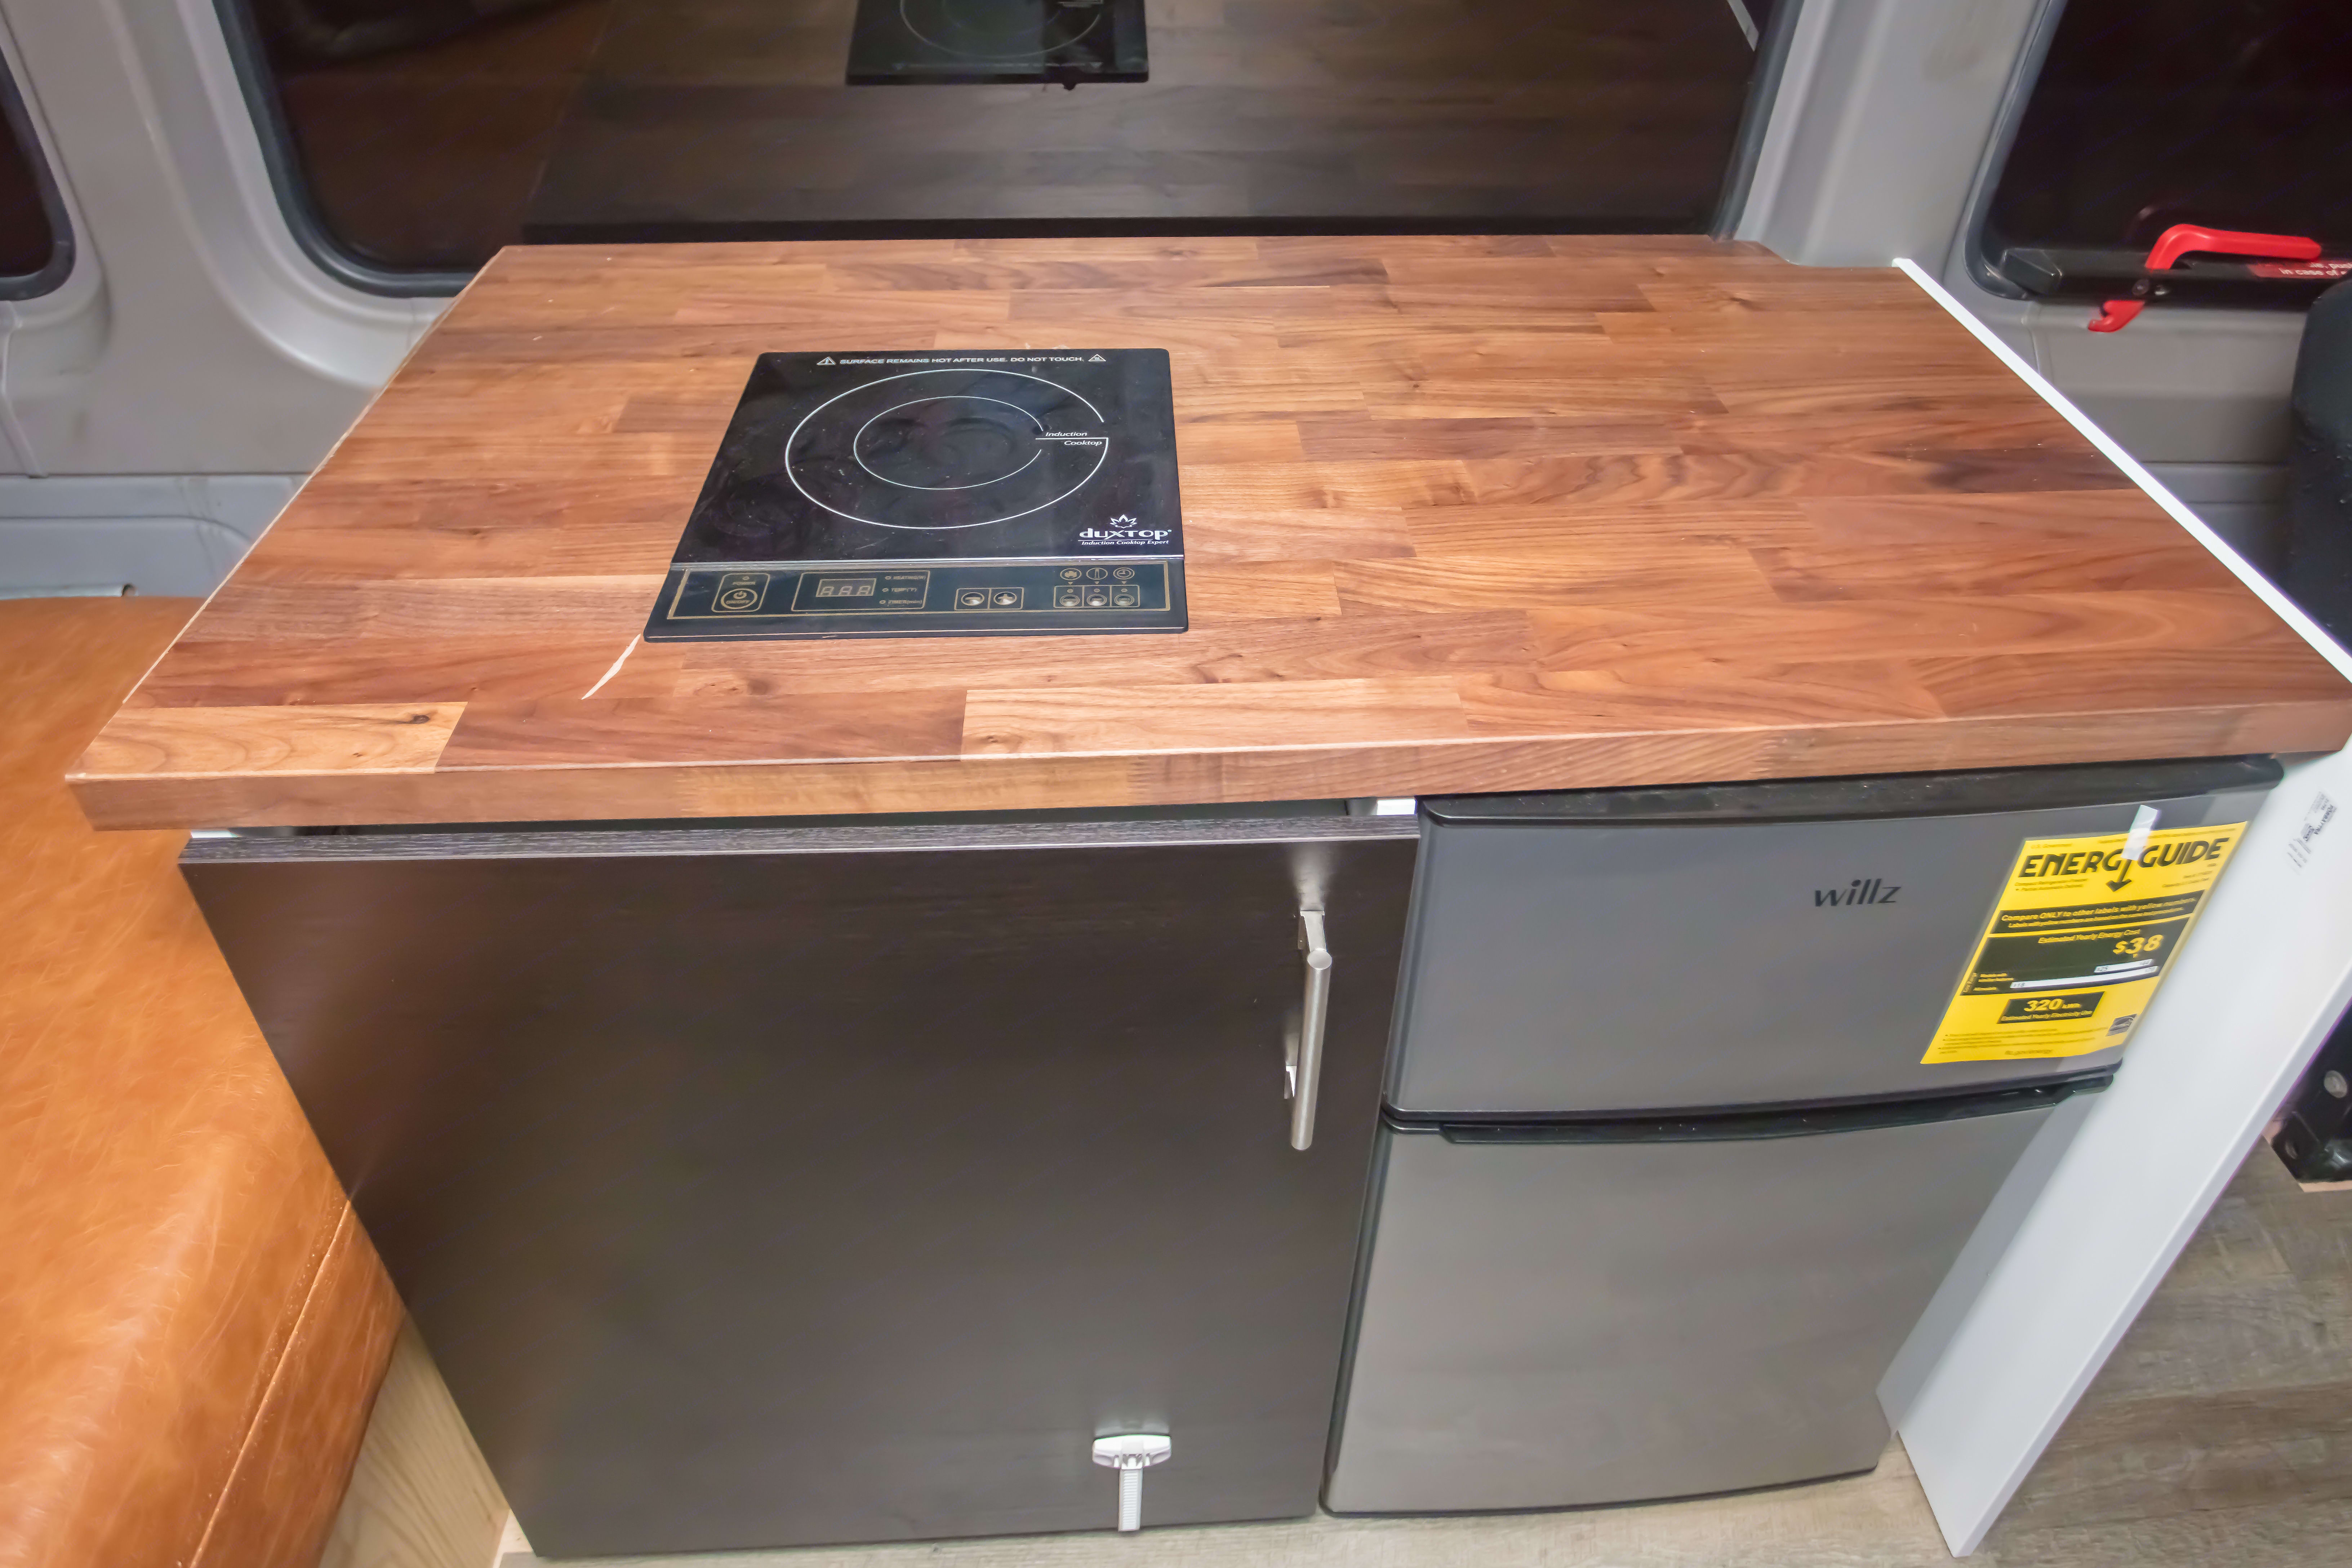 Walnut Butcherblock countertop with safe and efficient 1800W induction stove. Also includes 2 door refrigerator and Microwave. Mercedes-Benz Sprinter 170 EXT 3500 2014